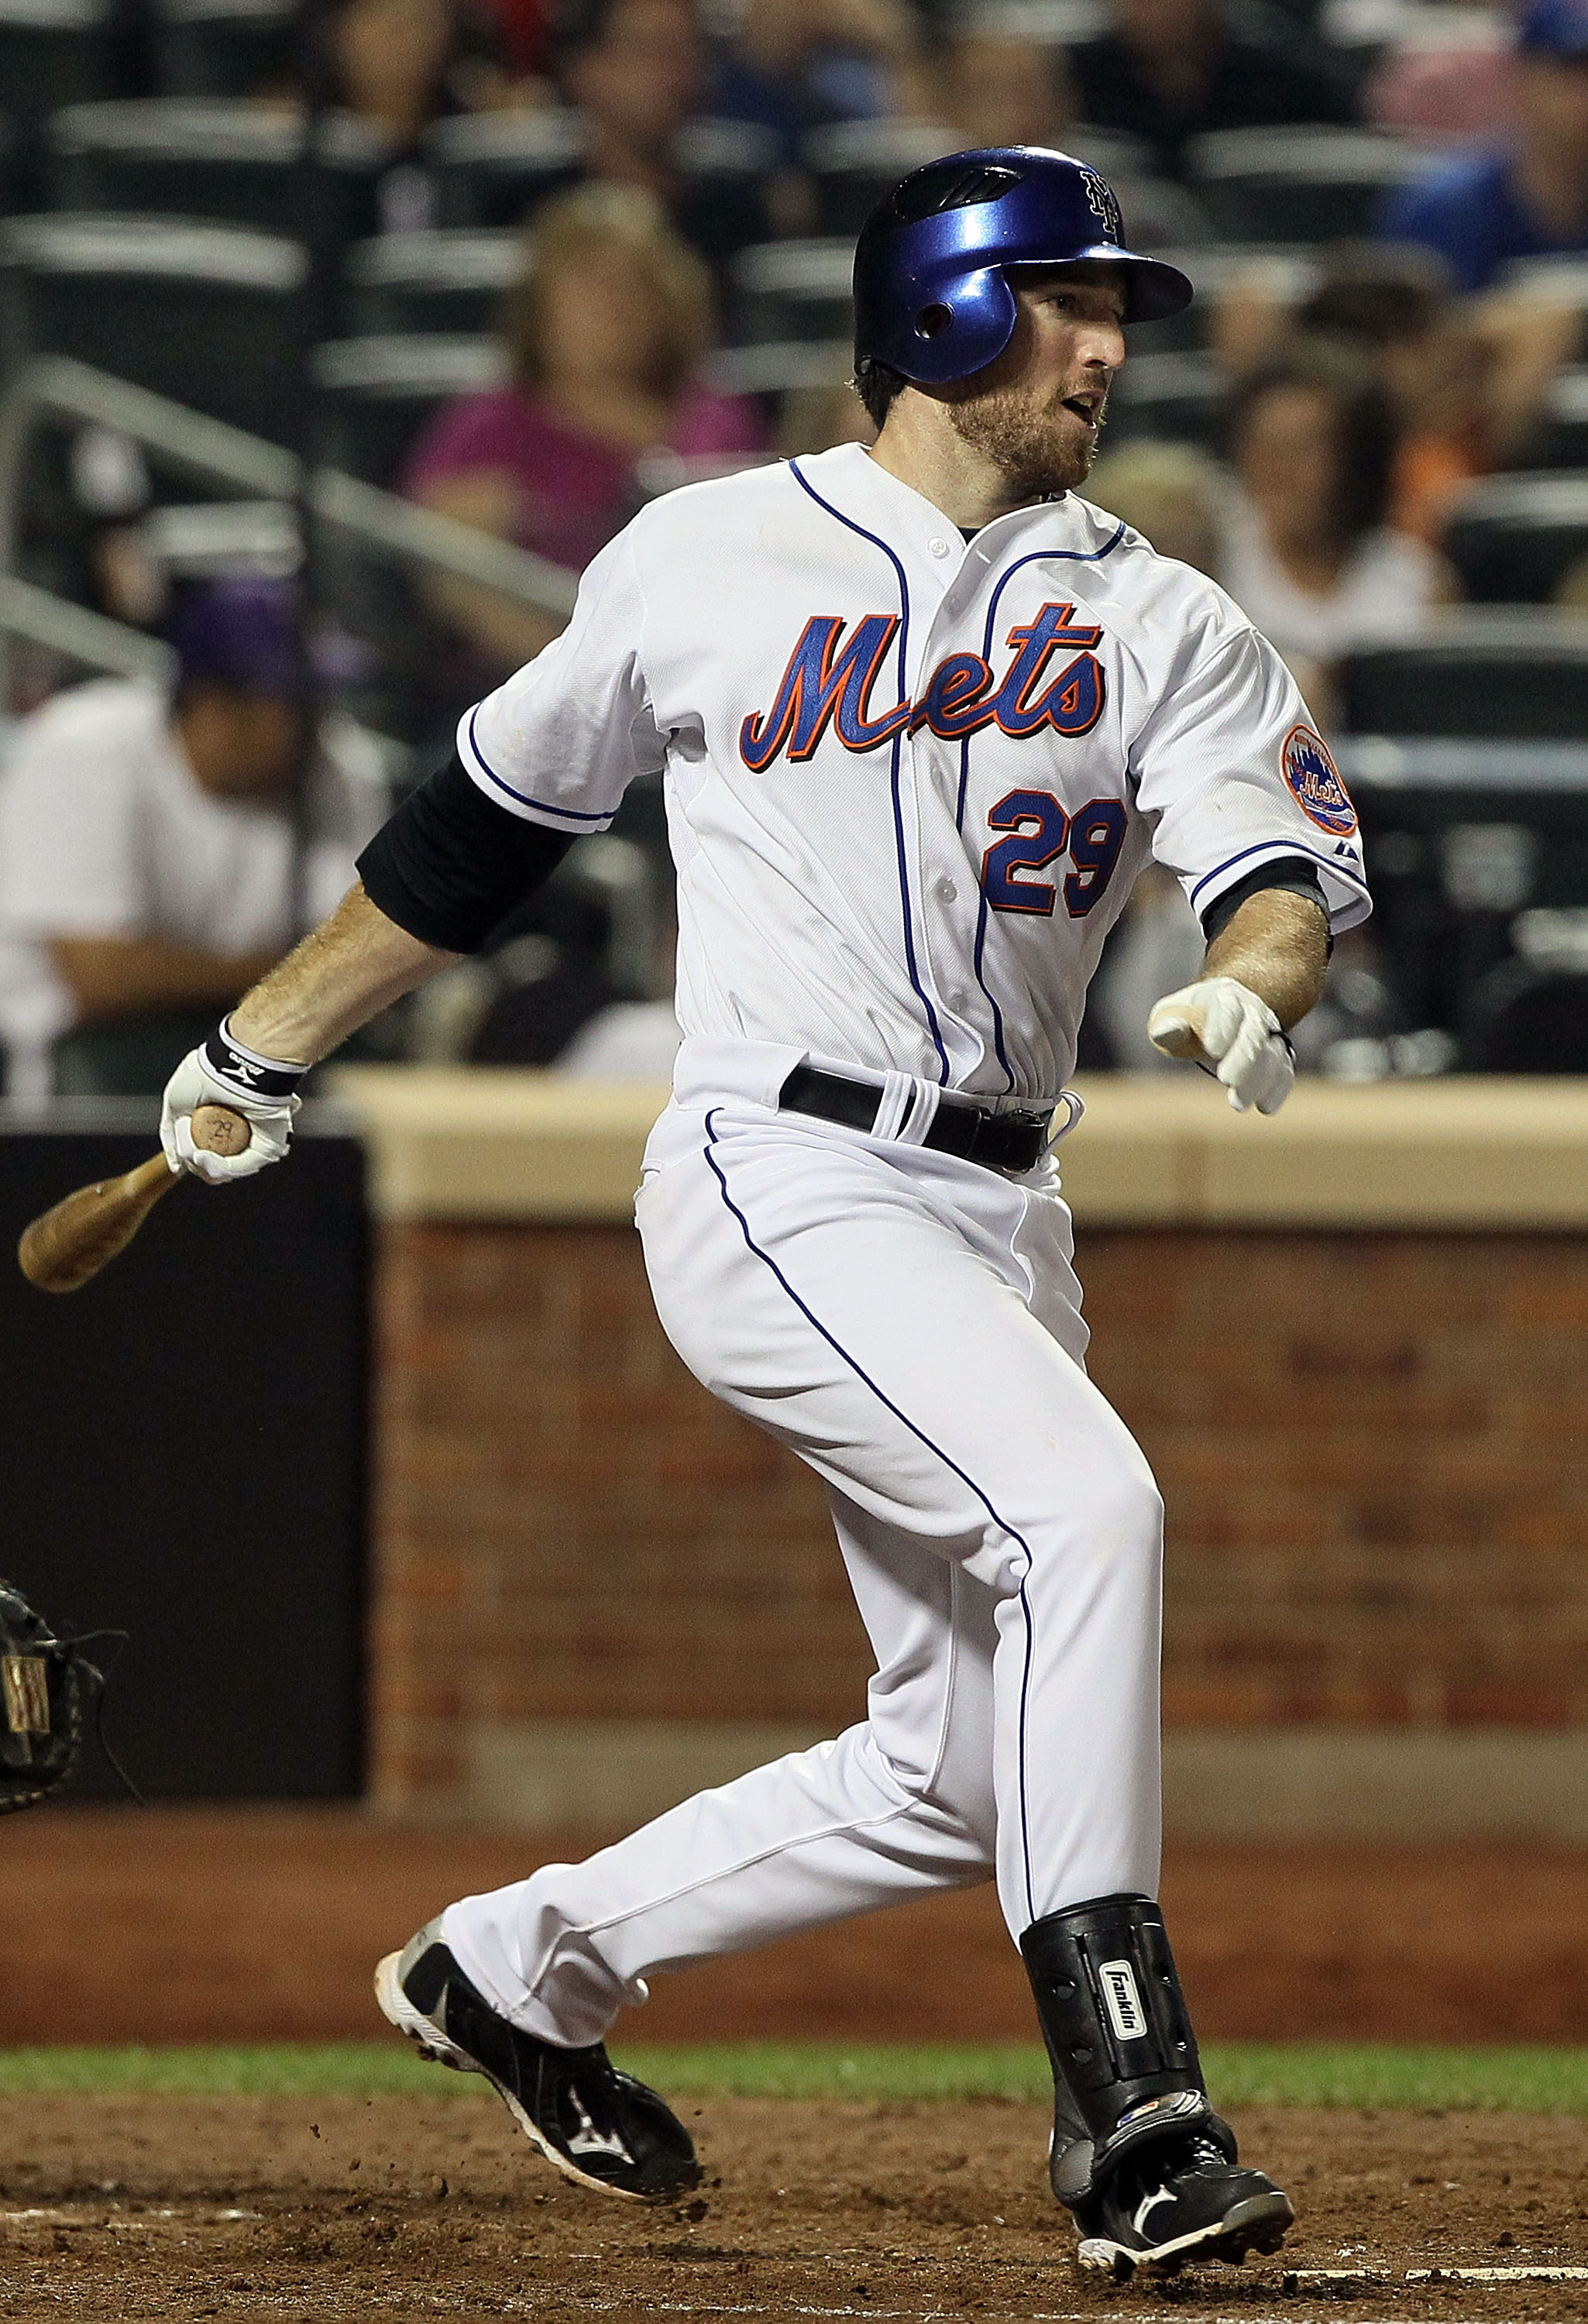 NEW YORK - JULY 05:  Ike Davis #29 of the New York Mets bats against the Cincinnati Reds on July 5, 2010 at Citi Field in the Flushing neighborhood of the Queens borough of New York City.  (Photo by Jim McIsaac/Getty Images)